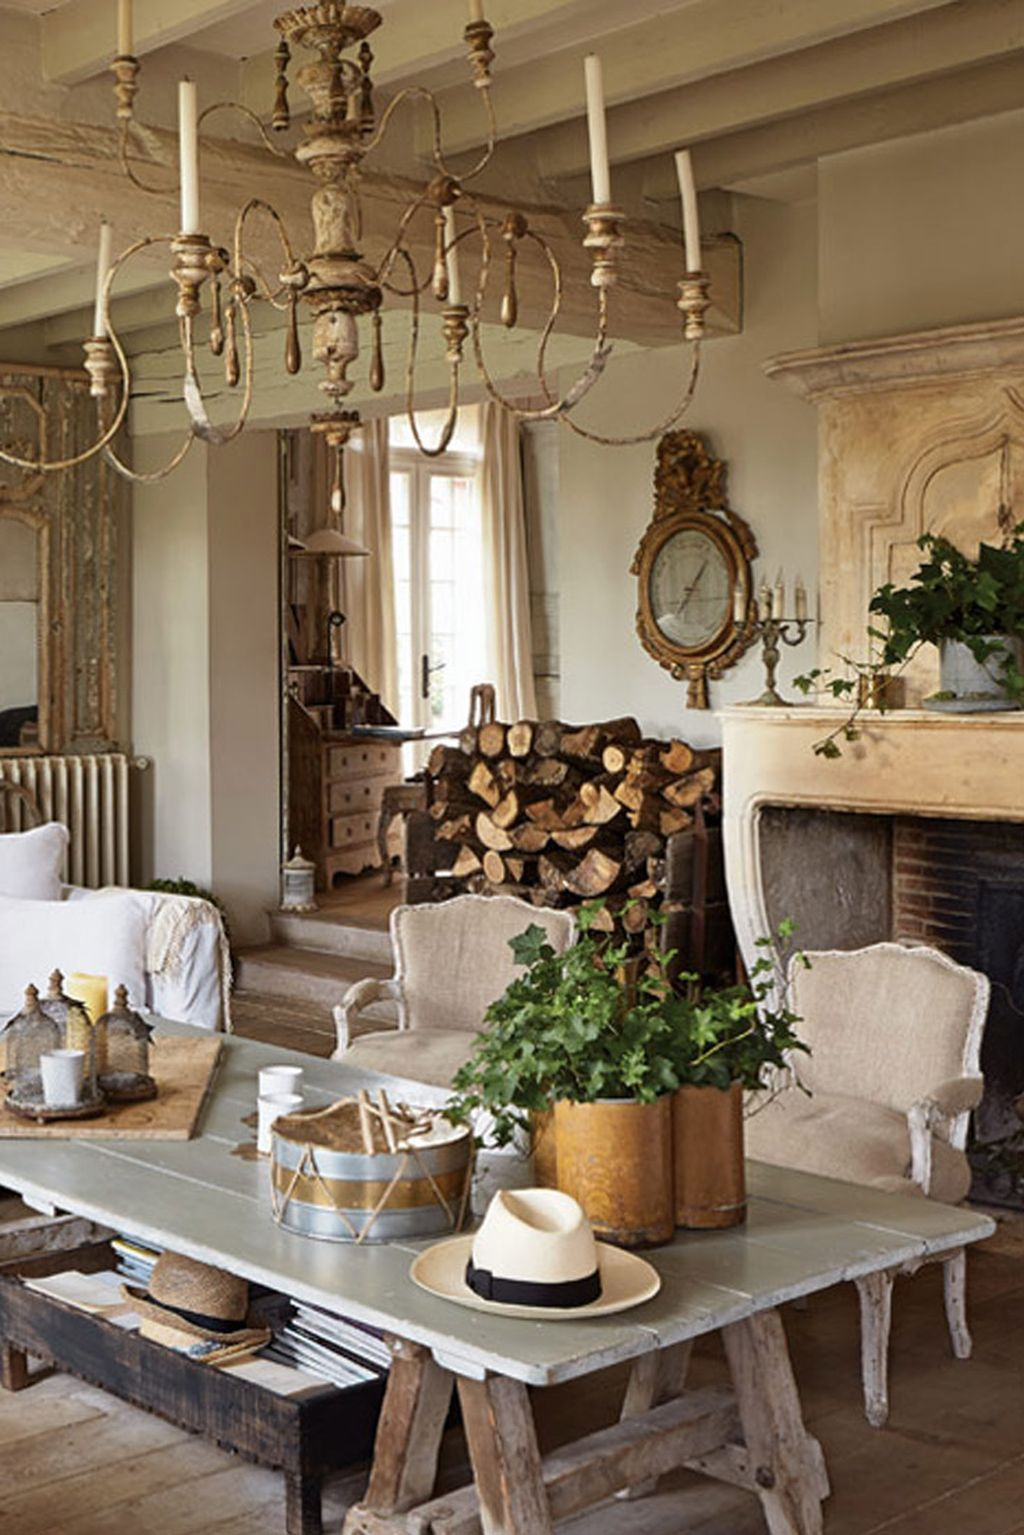 55 Amazing Rustic Farmhouse Style Kitchen Decorating Ideas Mesmerizing Country French Dining Room Set 2018